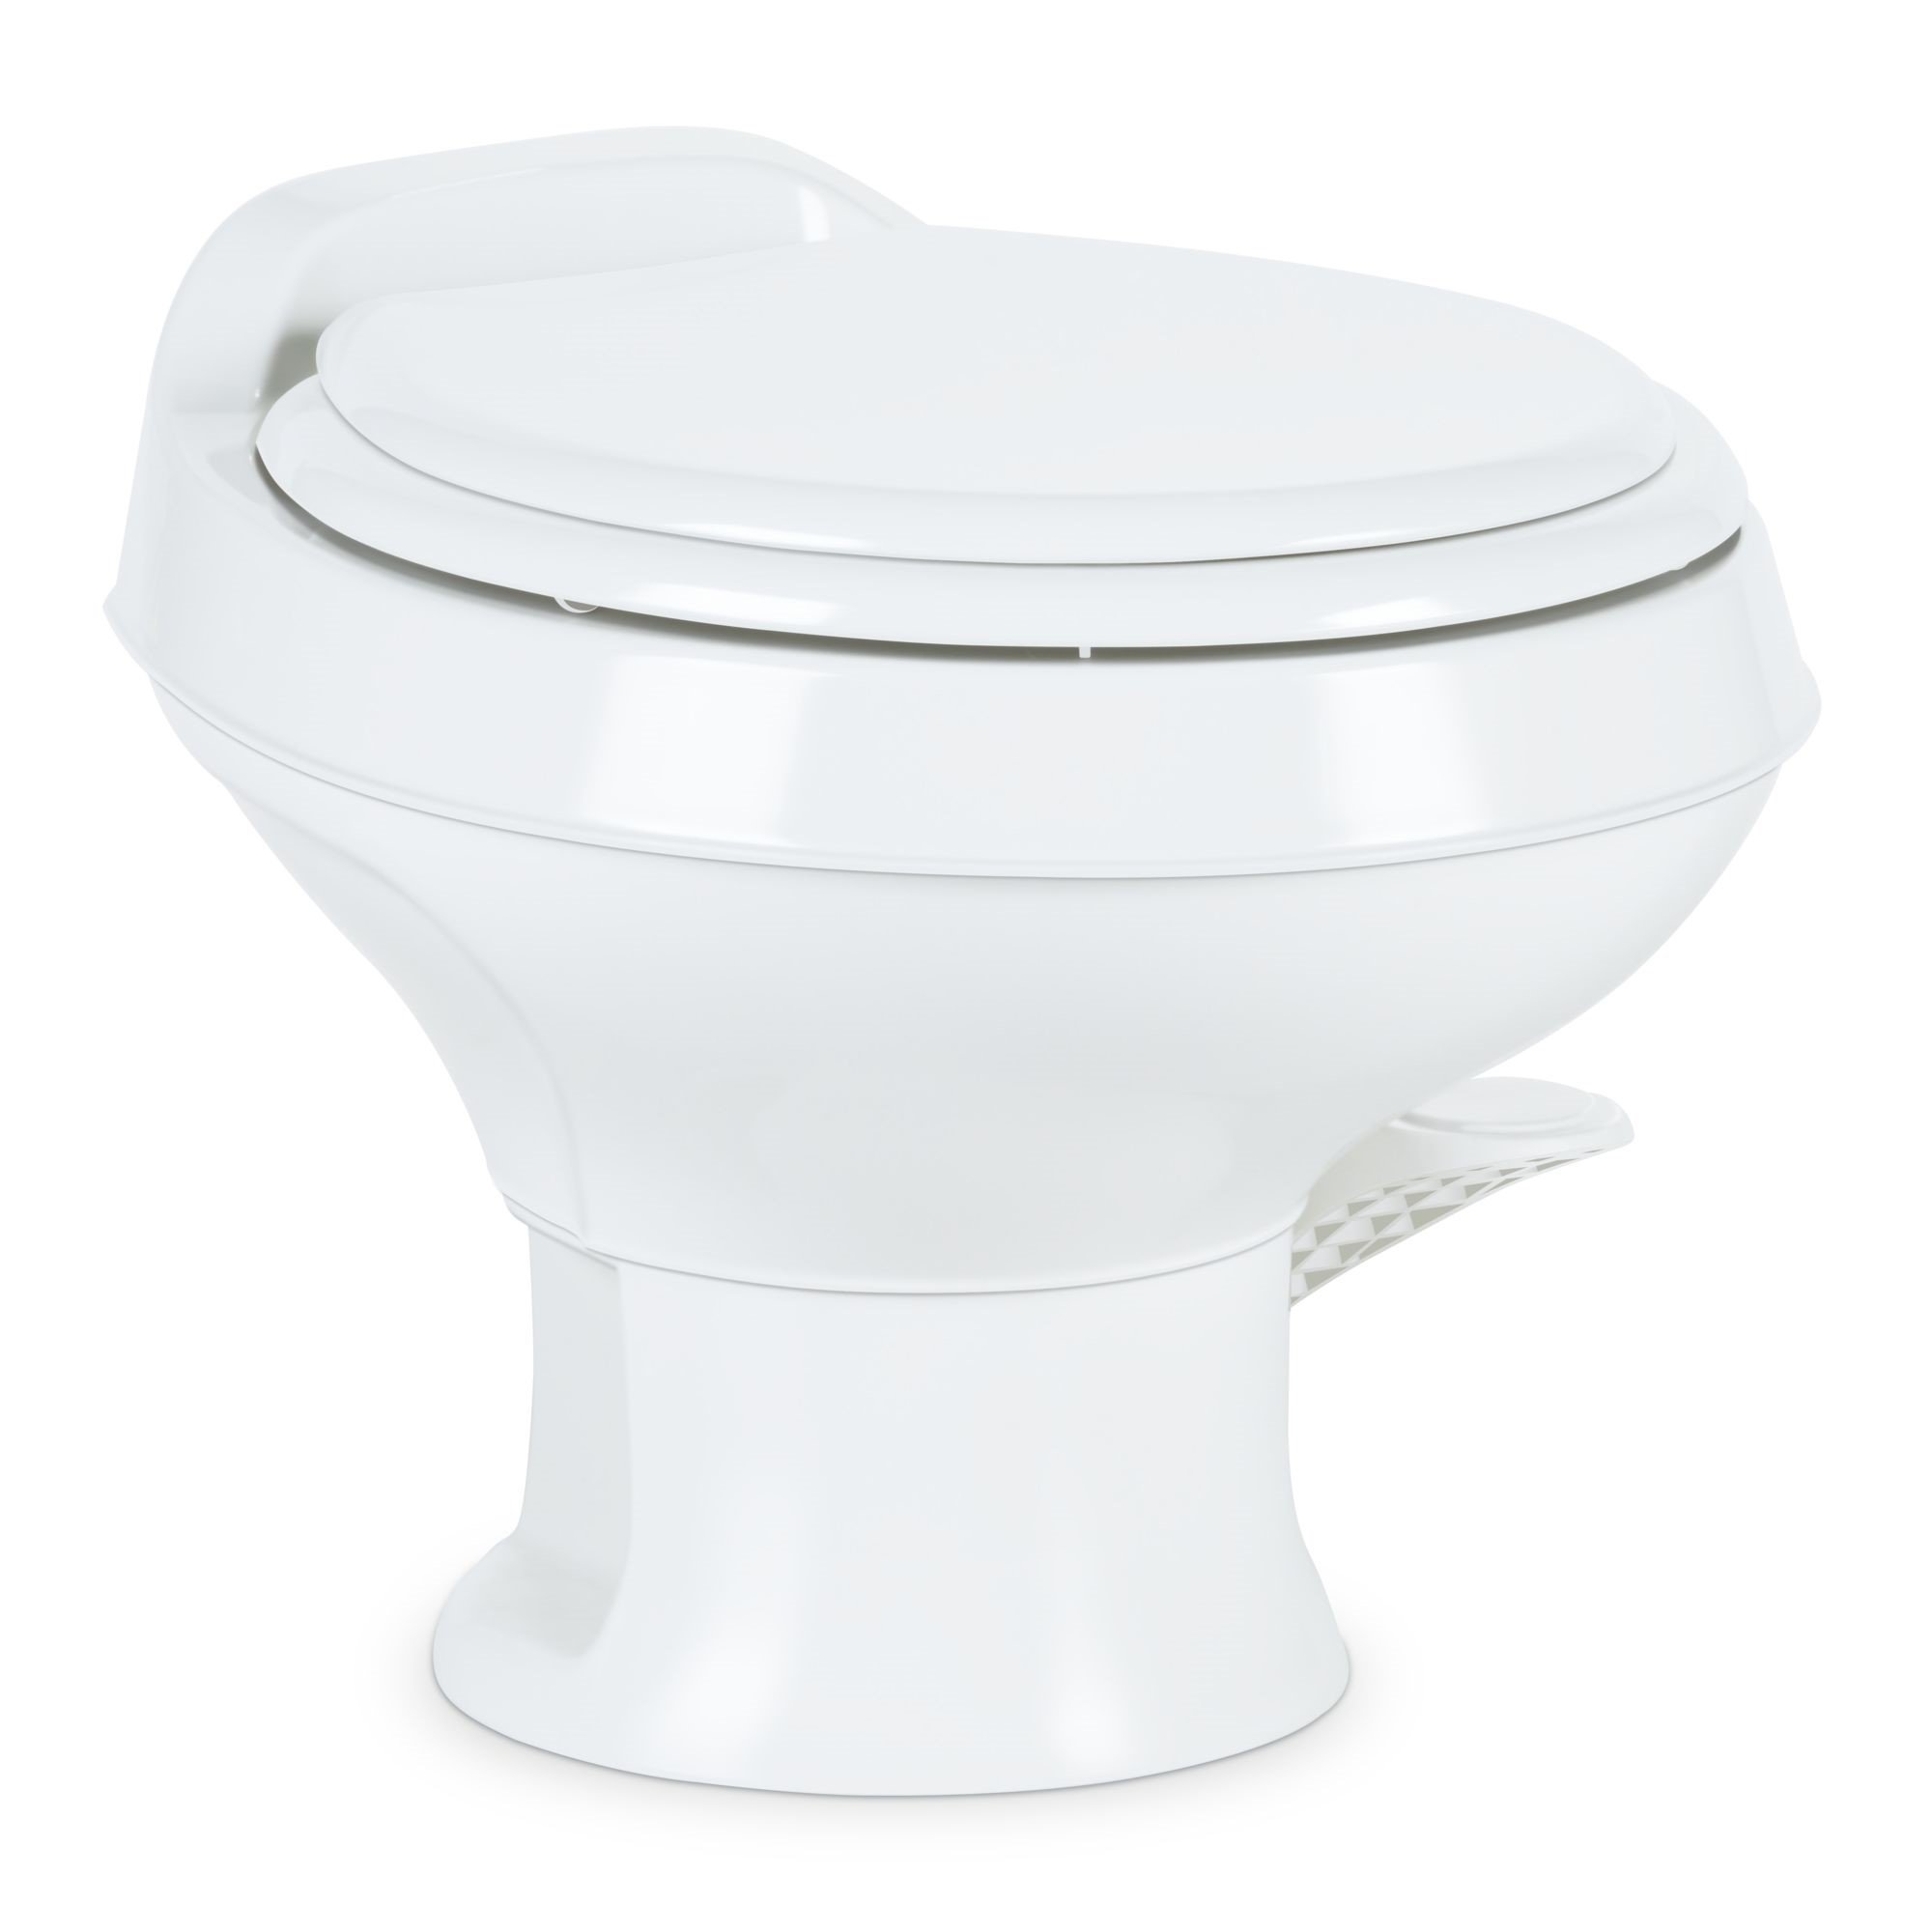 Dometic 300 Series Low Profile Toilet, White by Dometic